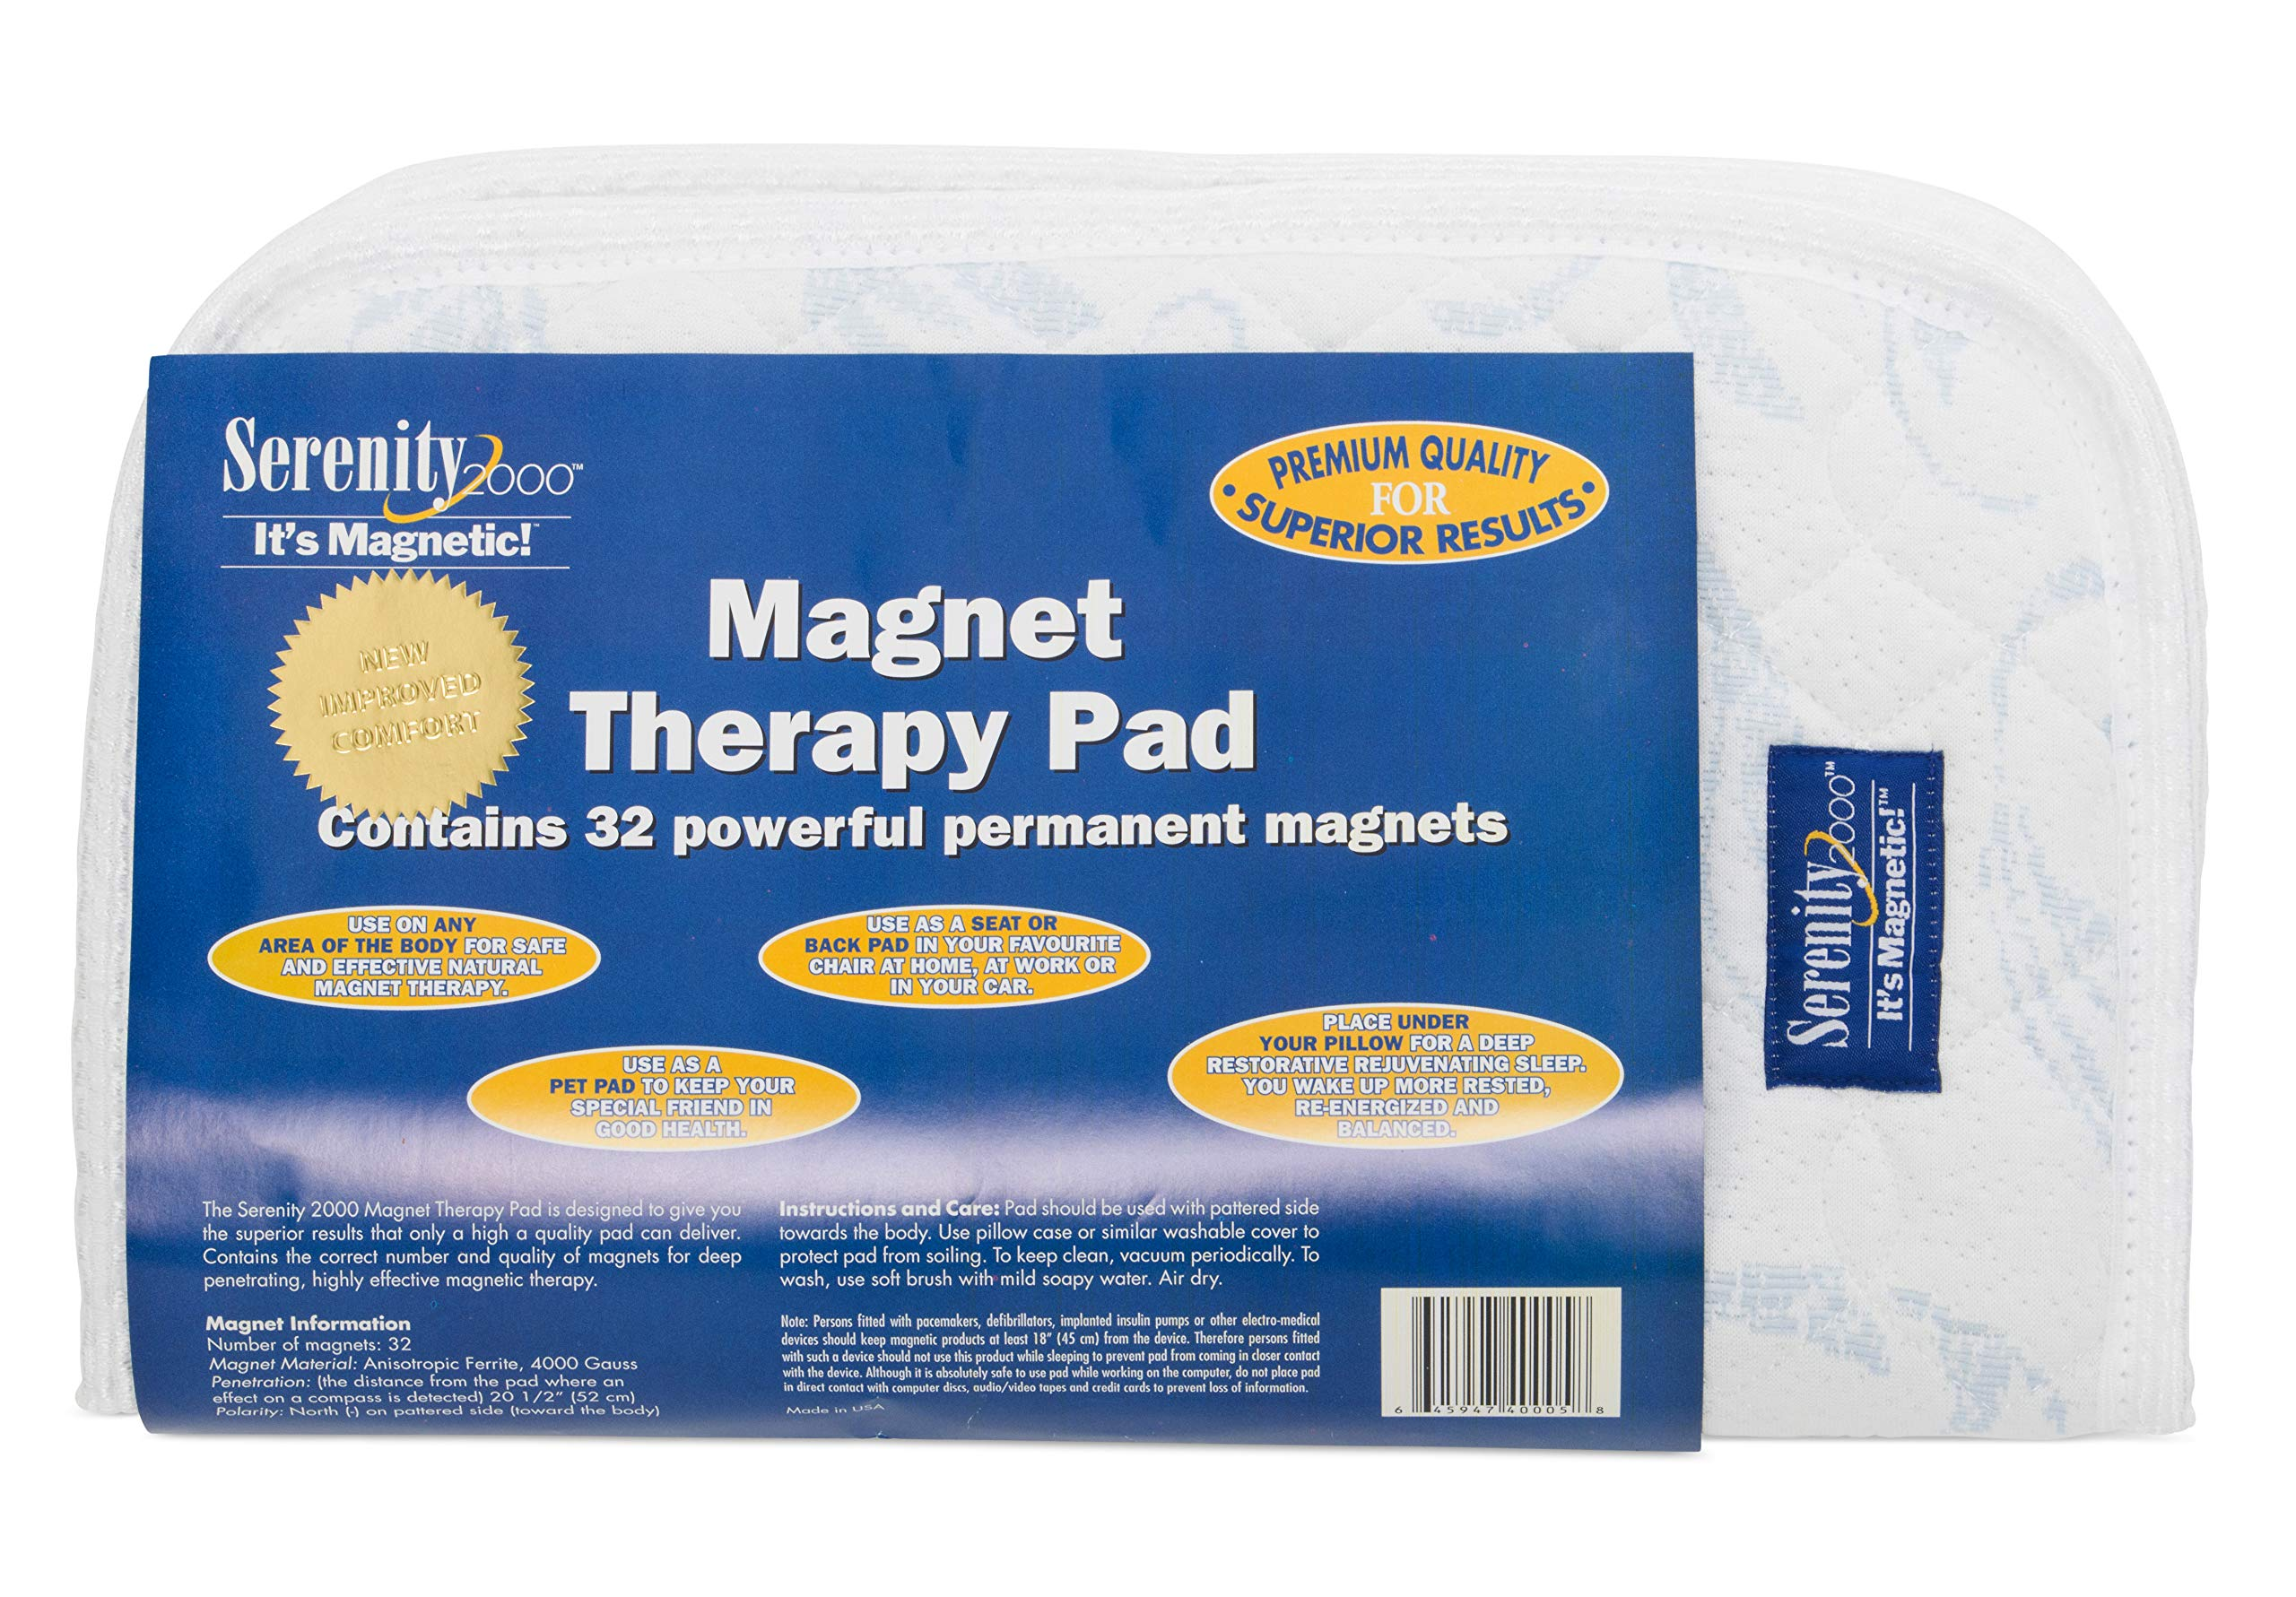 Magnetic Therapy Pad for Improved Sleep and Wellness by SERENITY2000